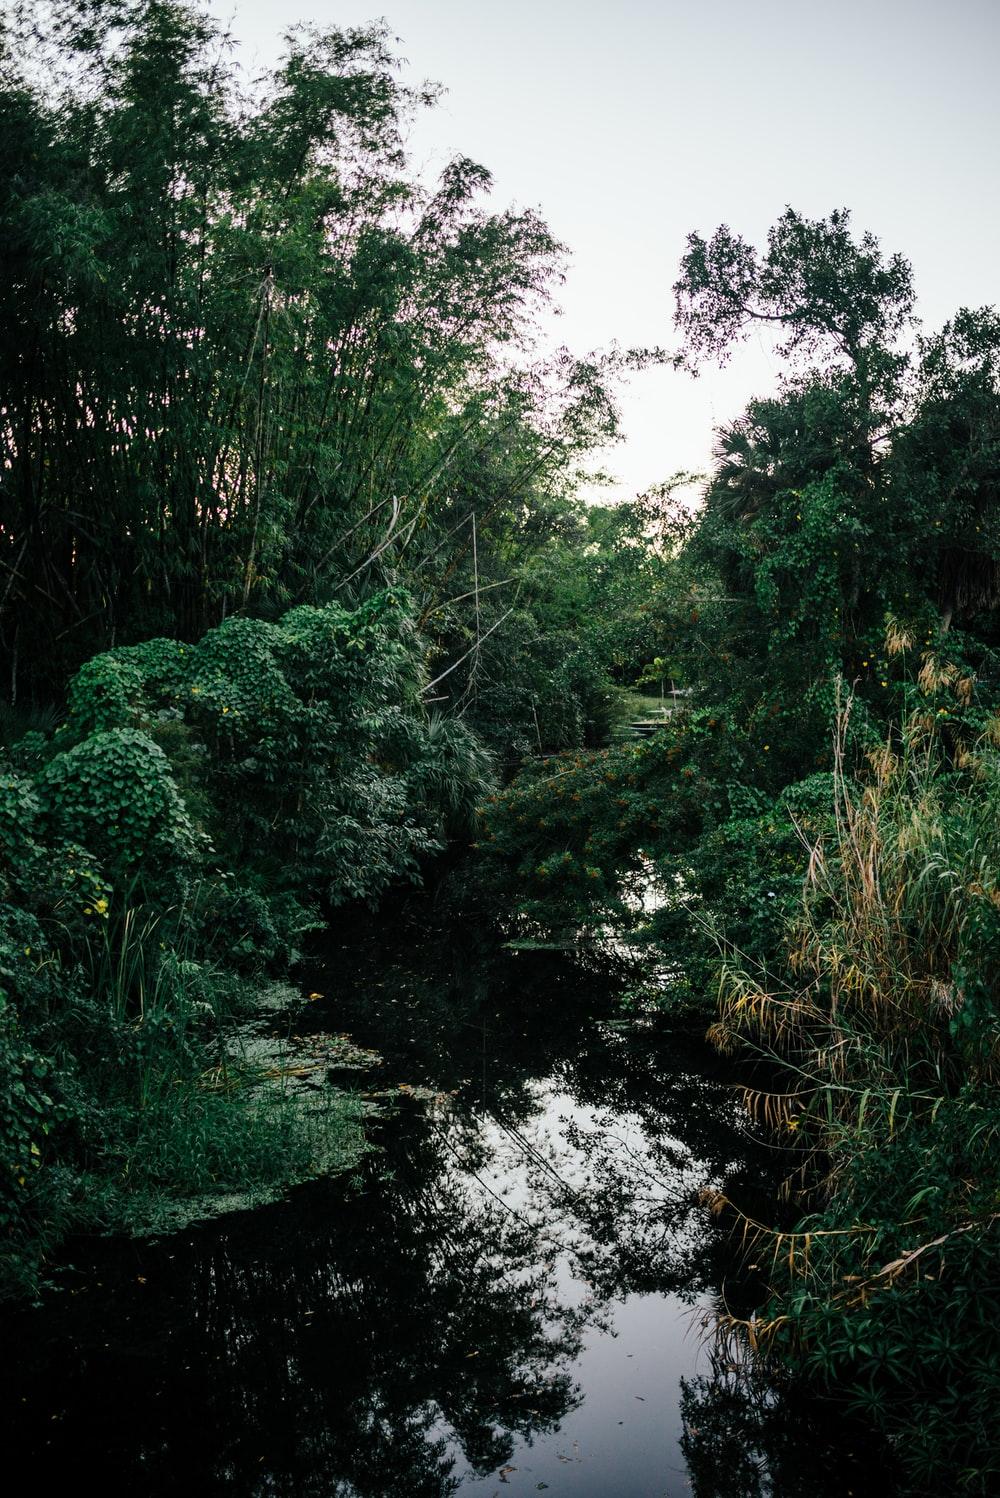 body of water between trees and plants